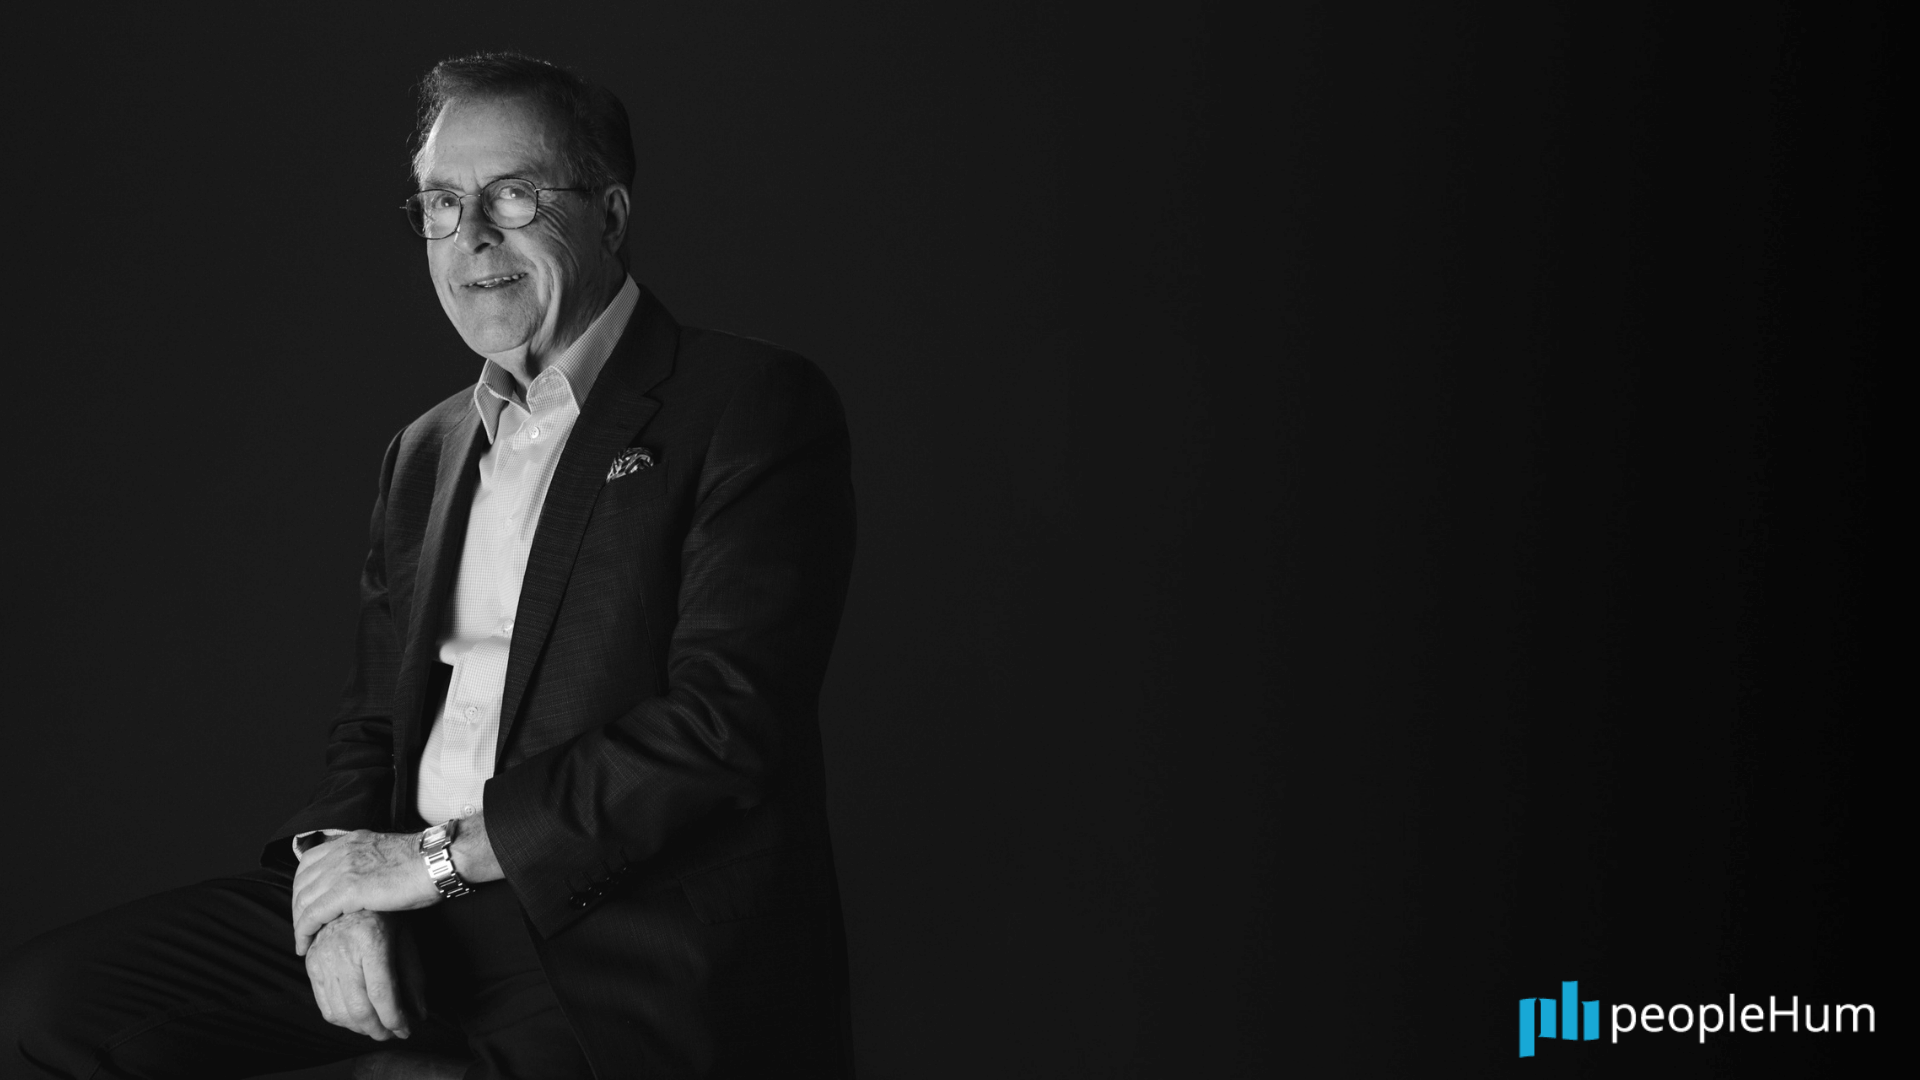 5 insights from Horst Schulze on leading with purpose